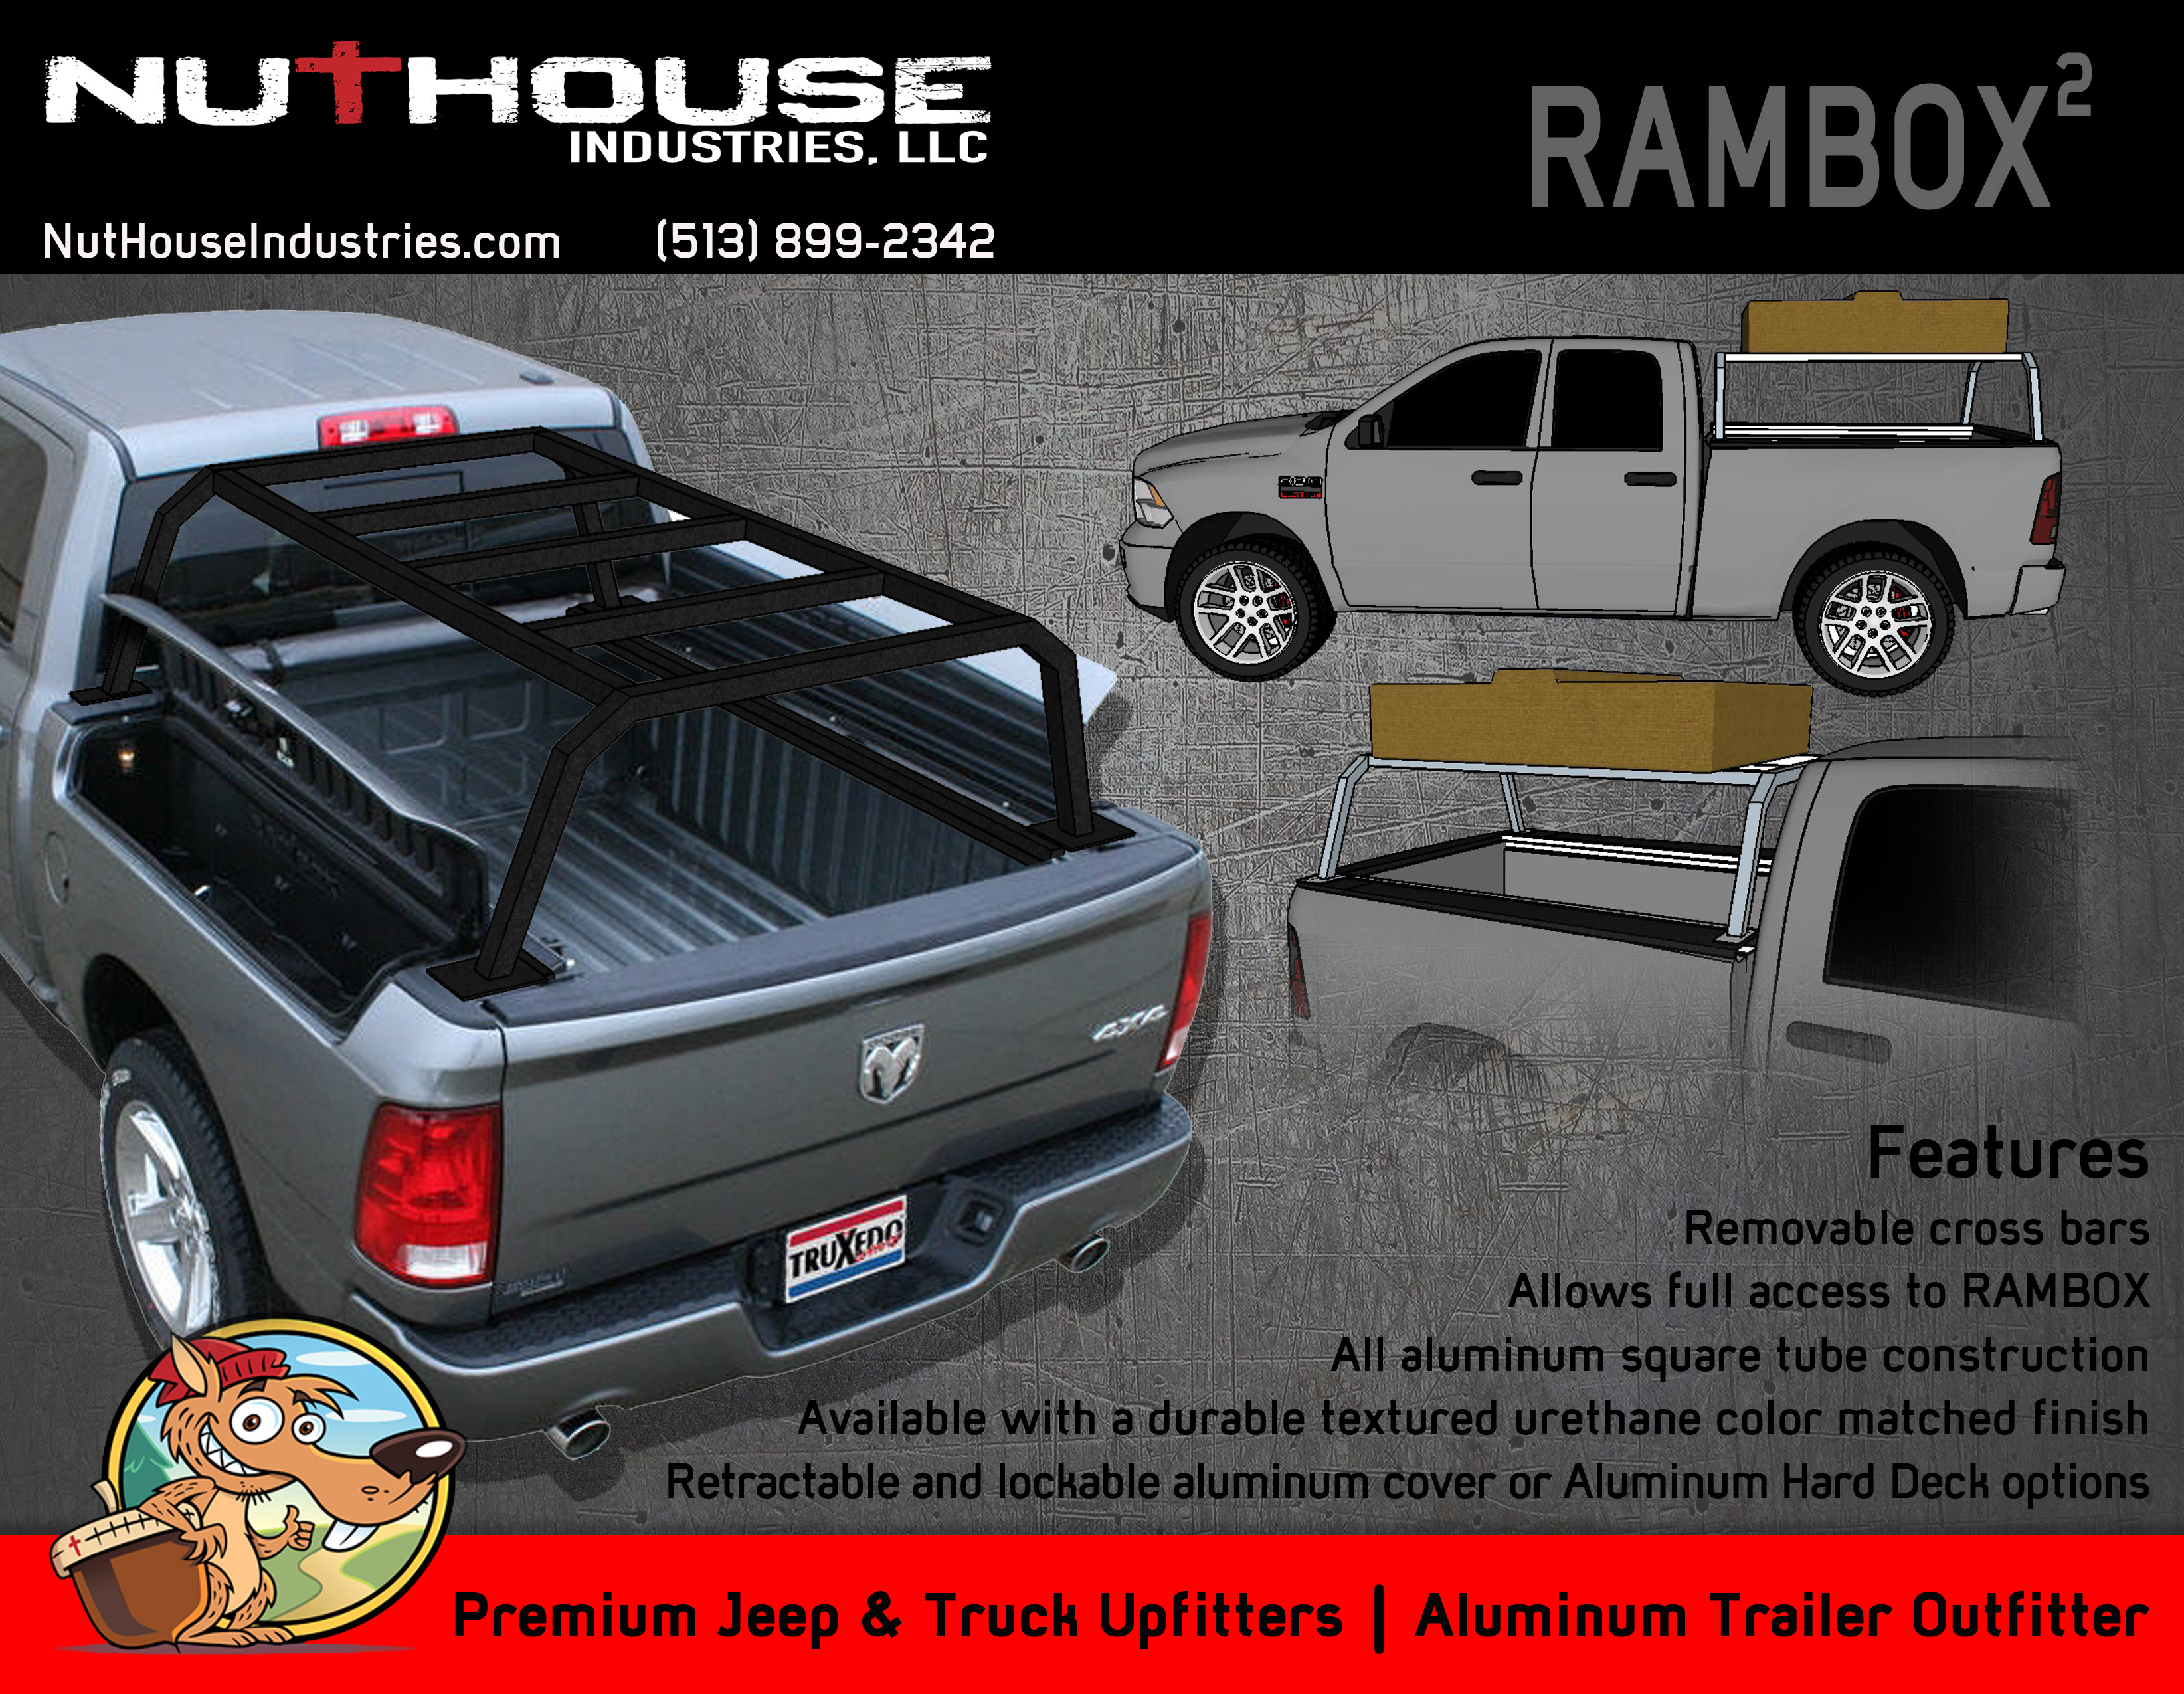 Nutzo RAMBOX series Expedition Truck Bed Rack Nuthouse Industries